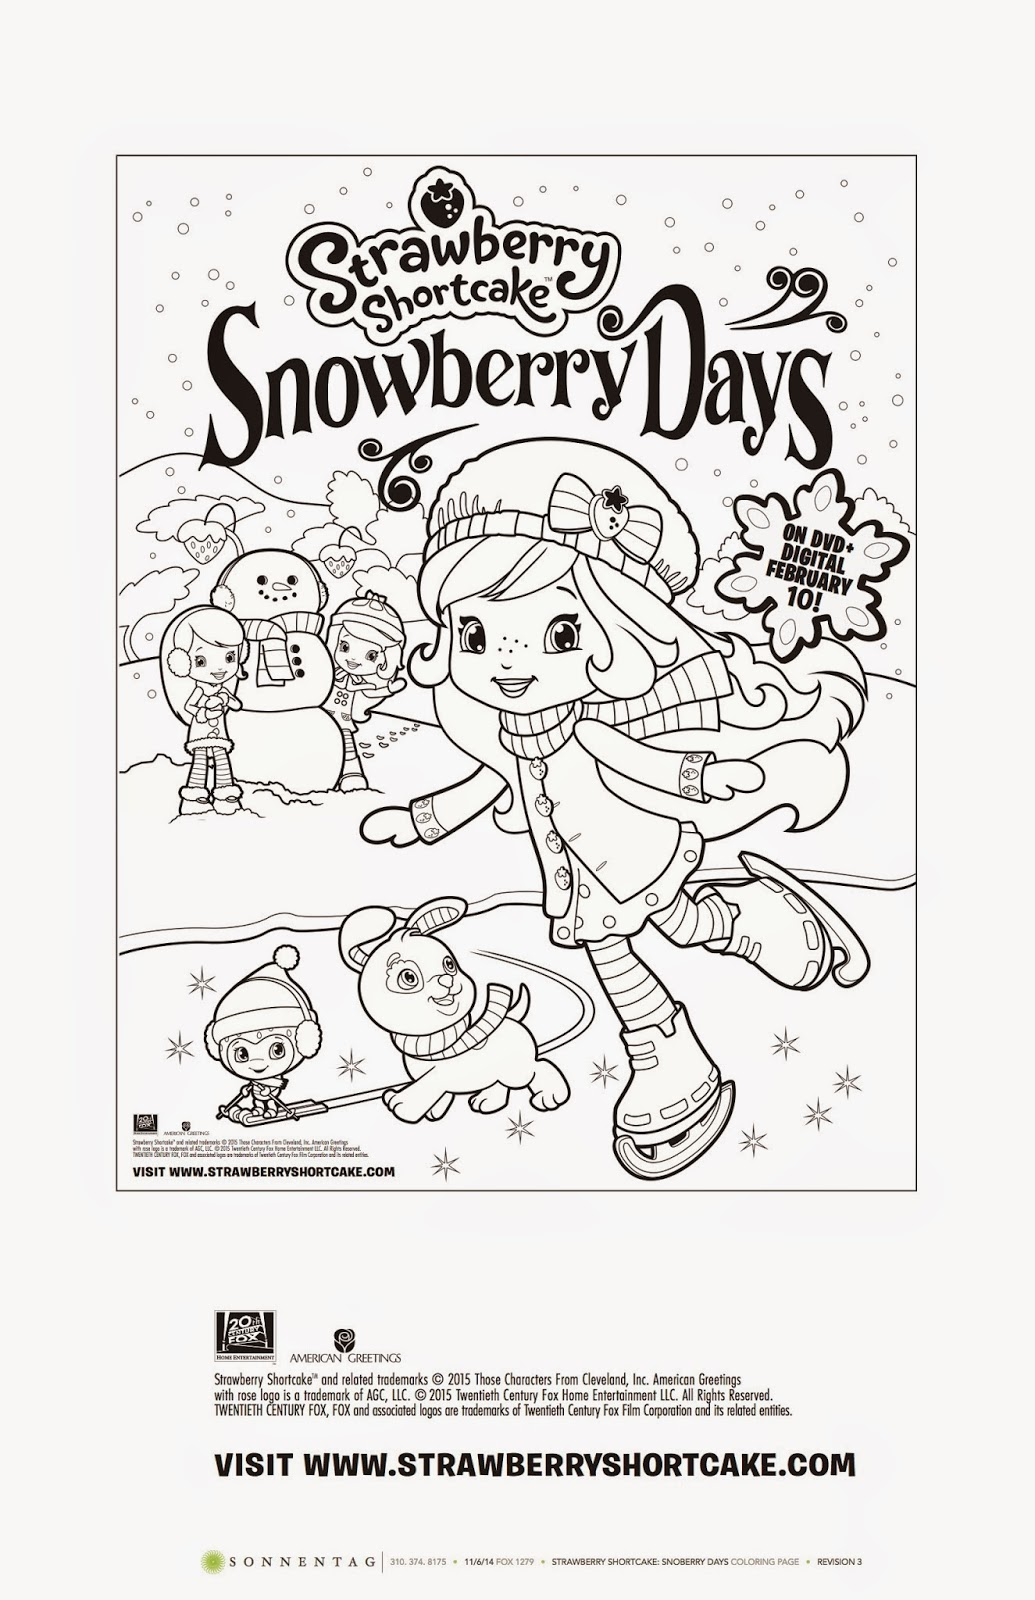 strawberry shortcake snowberry days coloring sheet u0026 giveaway